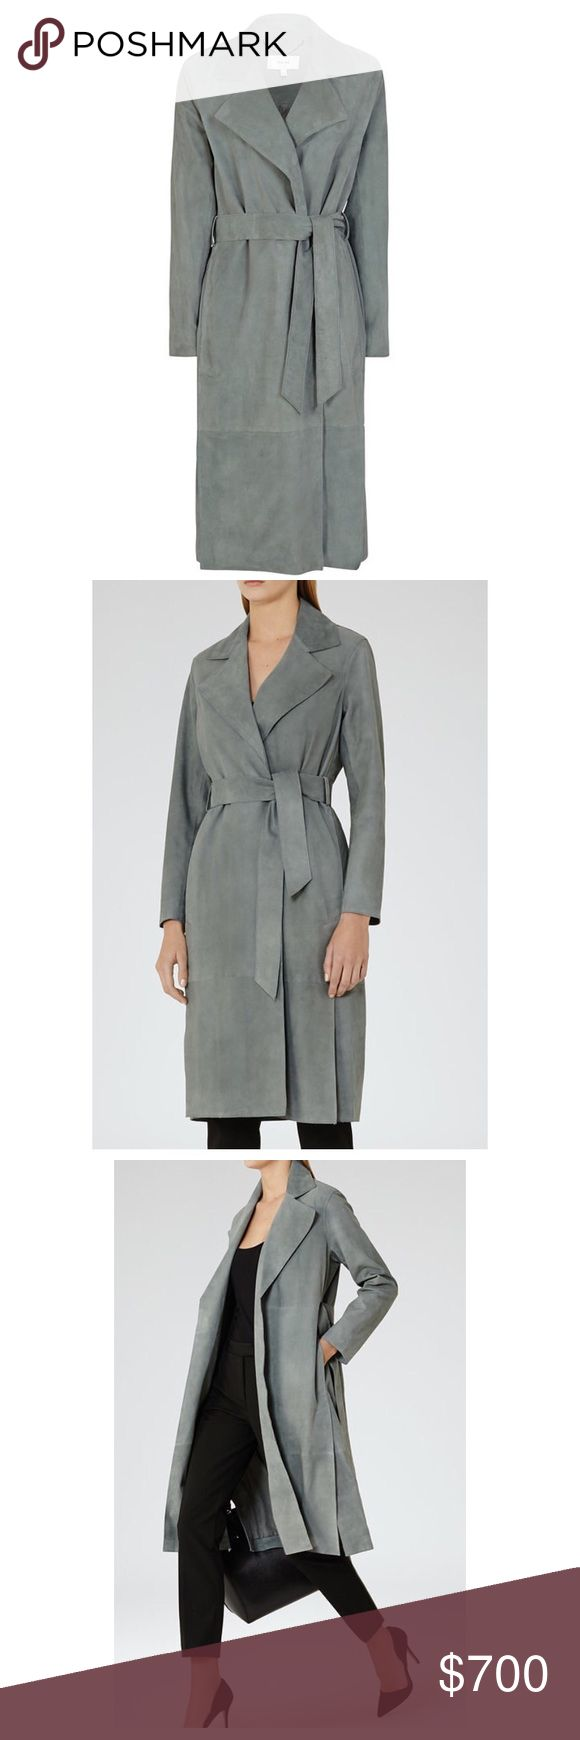 Brand new Reiss suede trench coat Super chic soft suede trench coat. It is fully lined and perfect for the spring. All offers are welcome! This piece is a must! Reiss Jackets & Coats Trench Coats